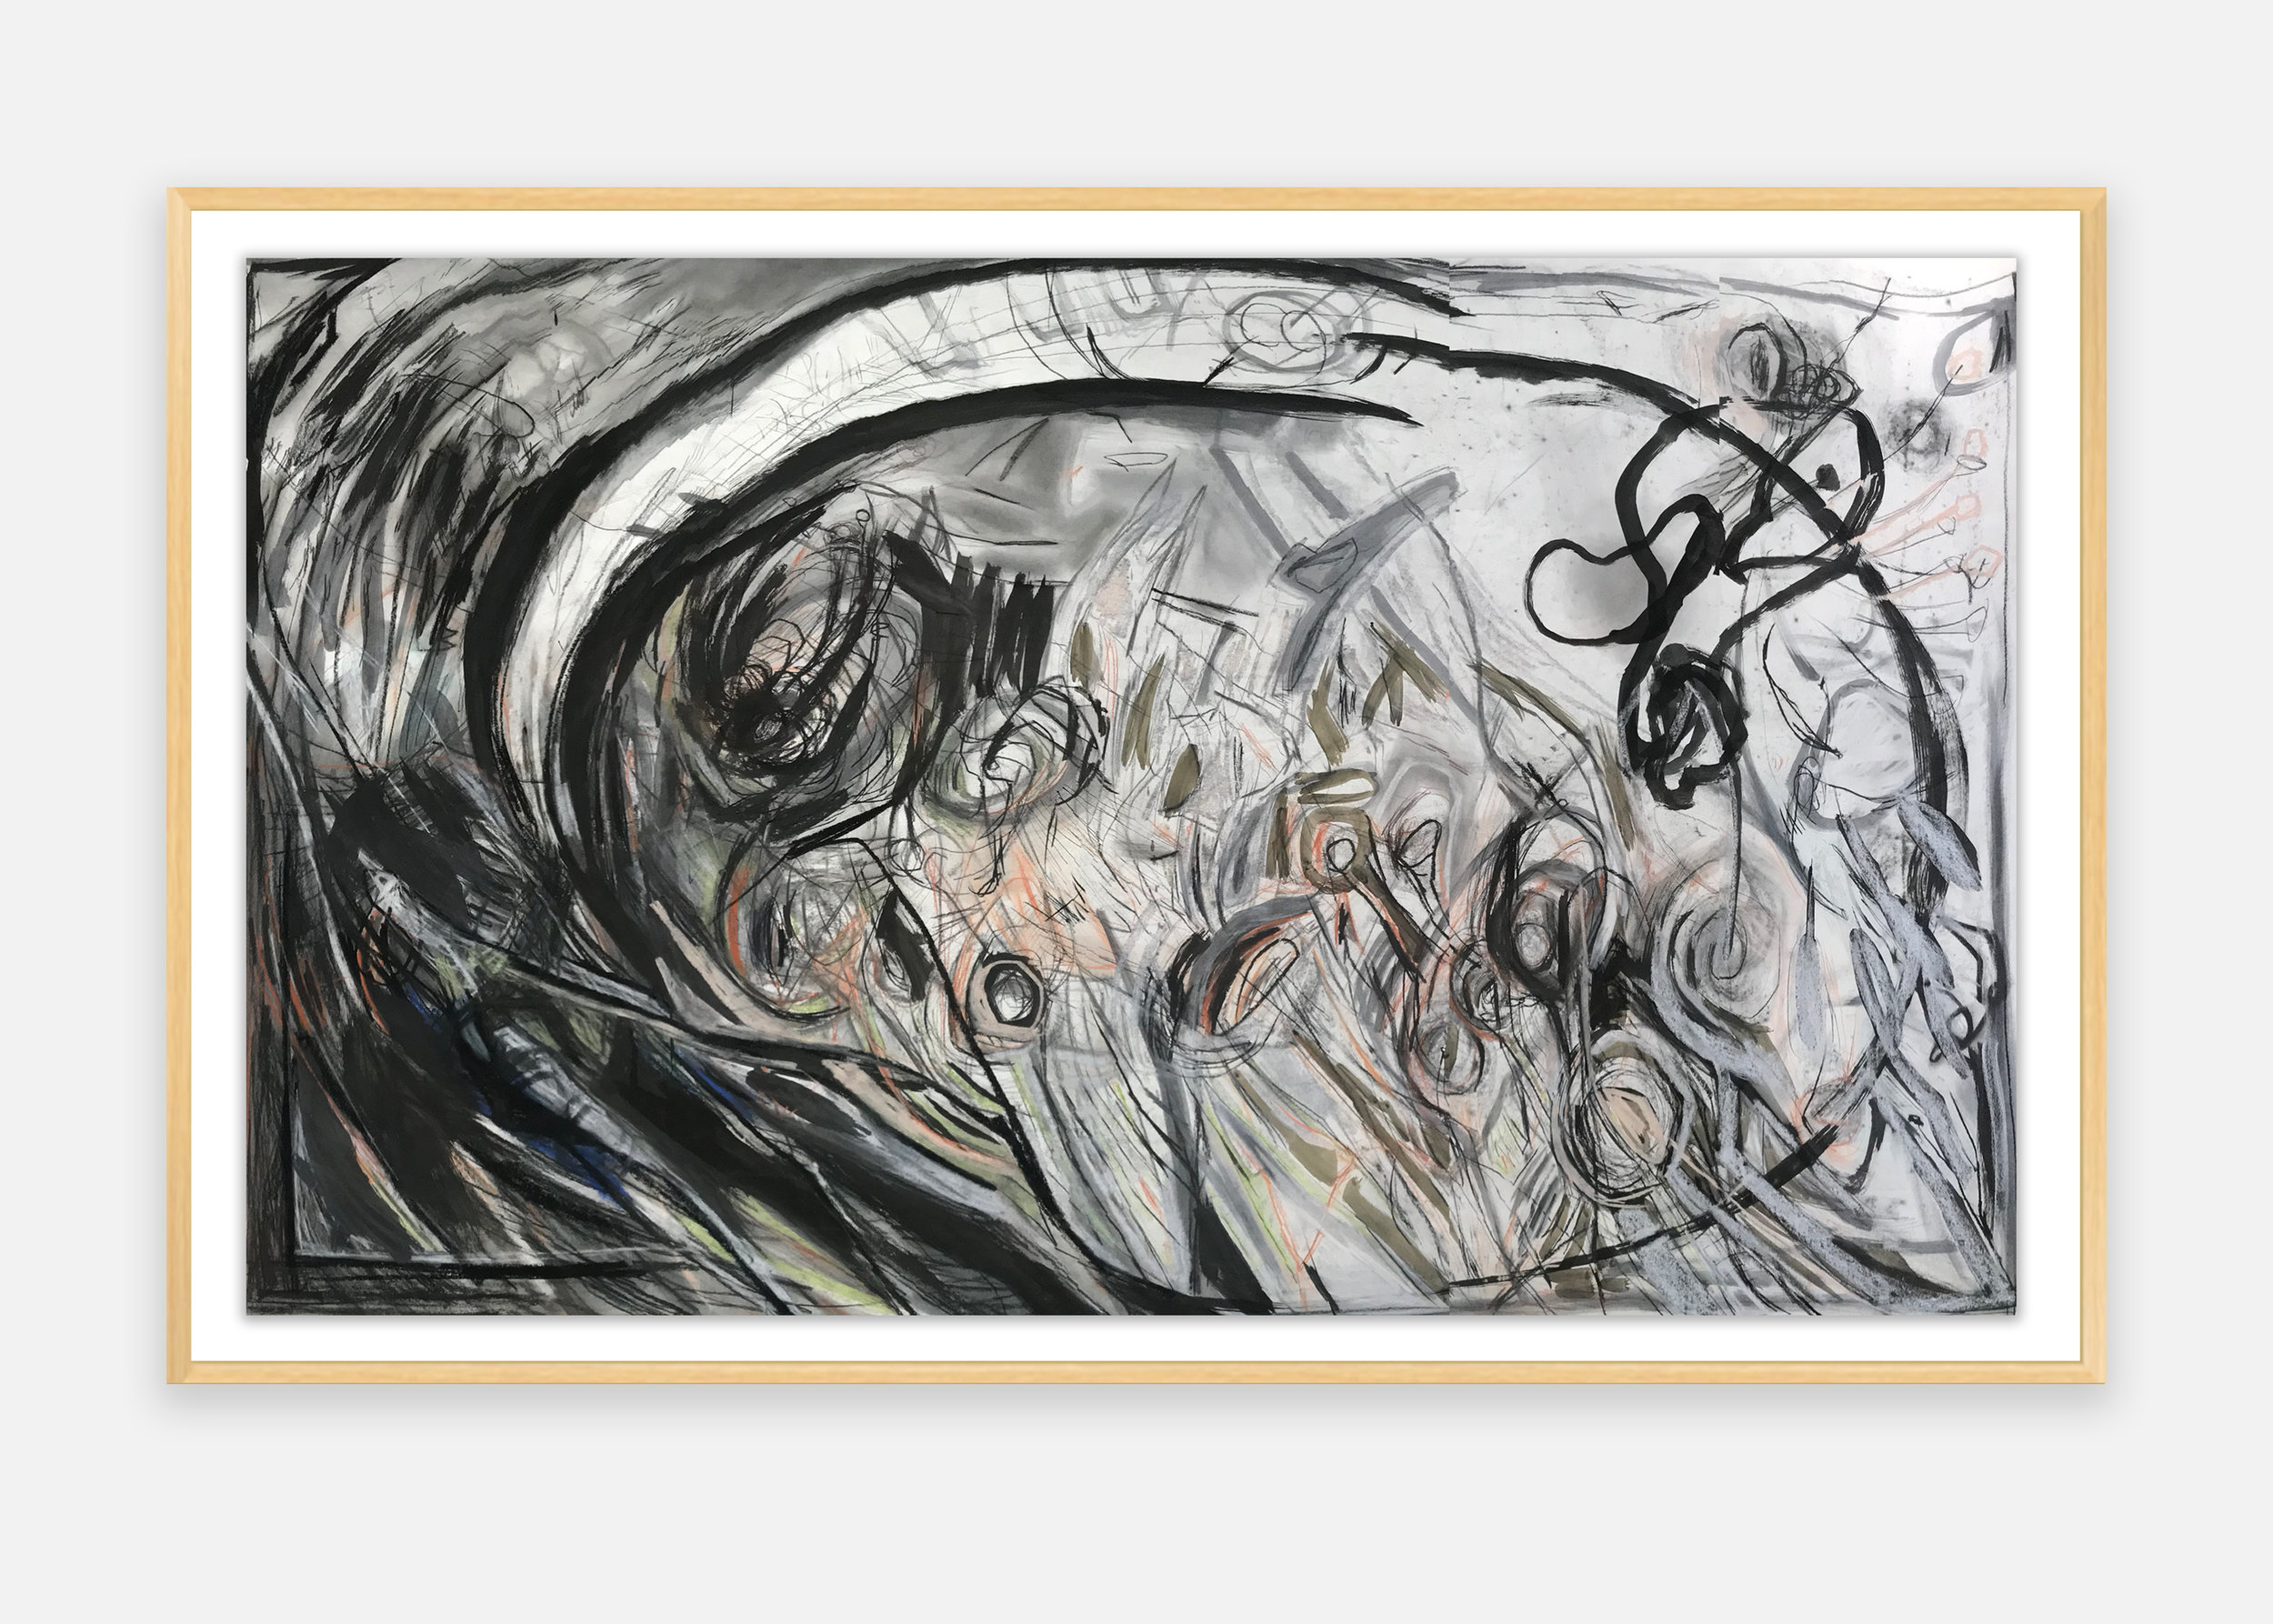 Beverly Fishman  -  Untitled , 1985-87 Pastel and charcoal on archival paper Artwork Dimensions: 54.5h x 77w inches Framed Dimensions: 58.5h x 81w inches